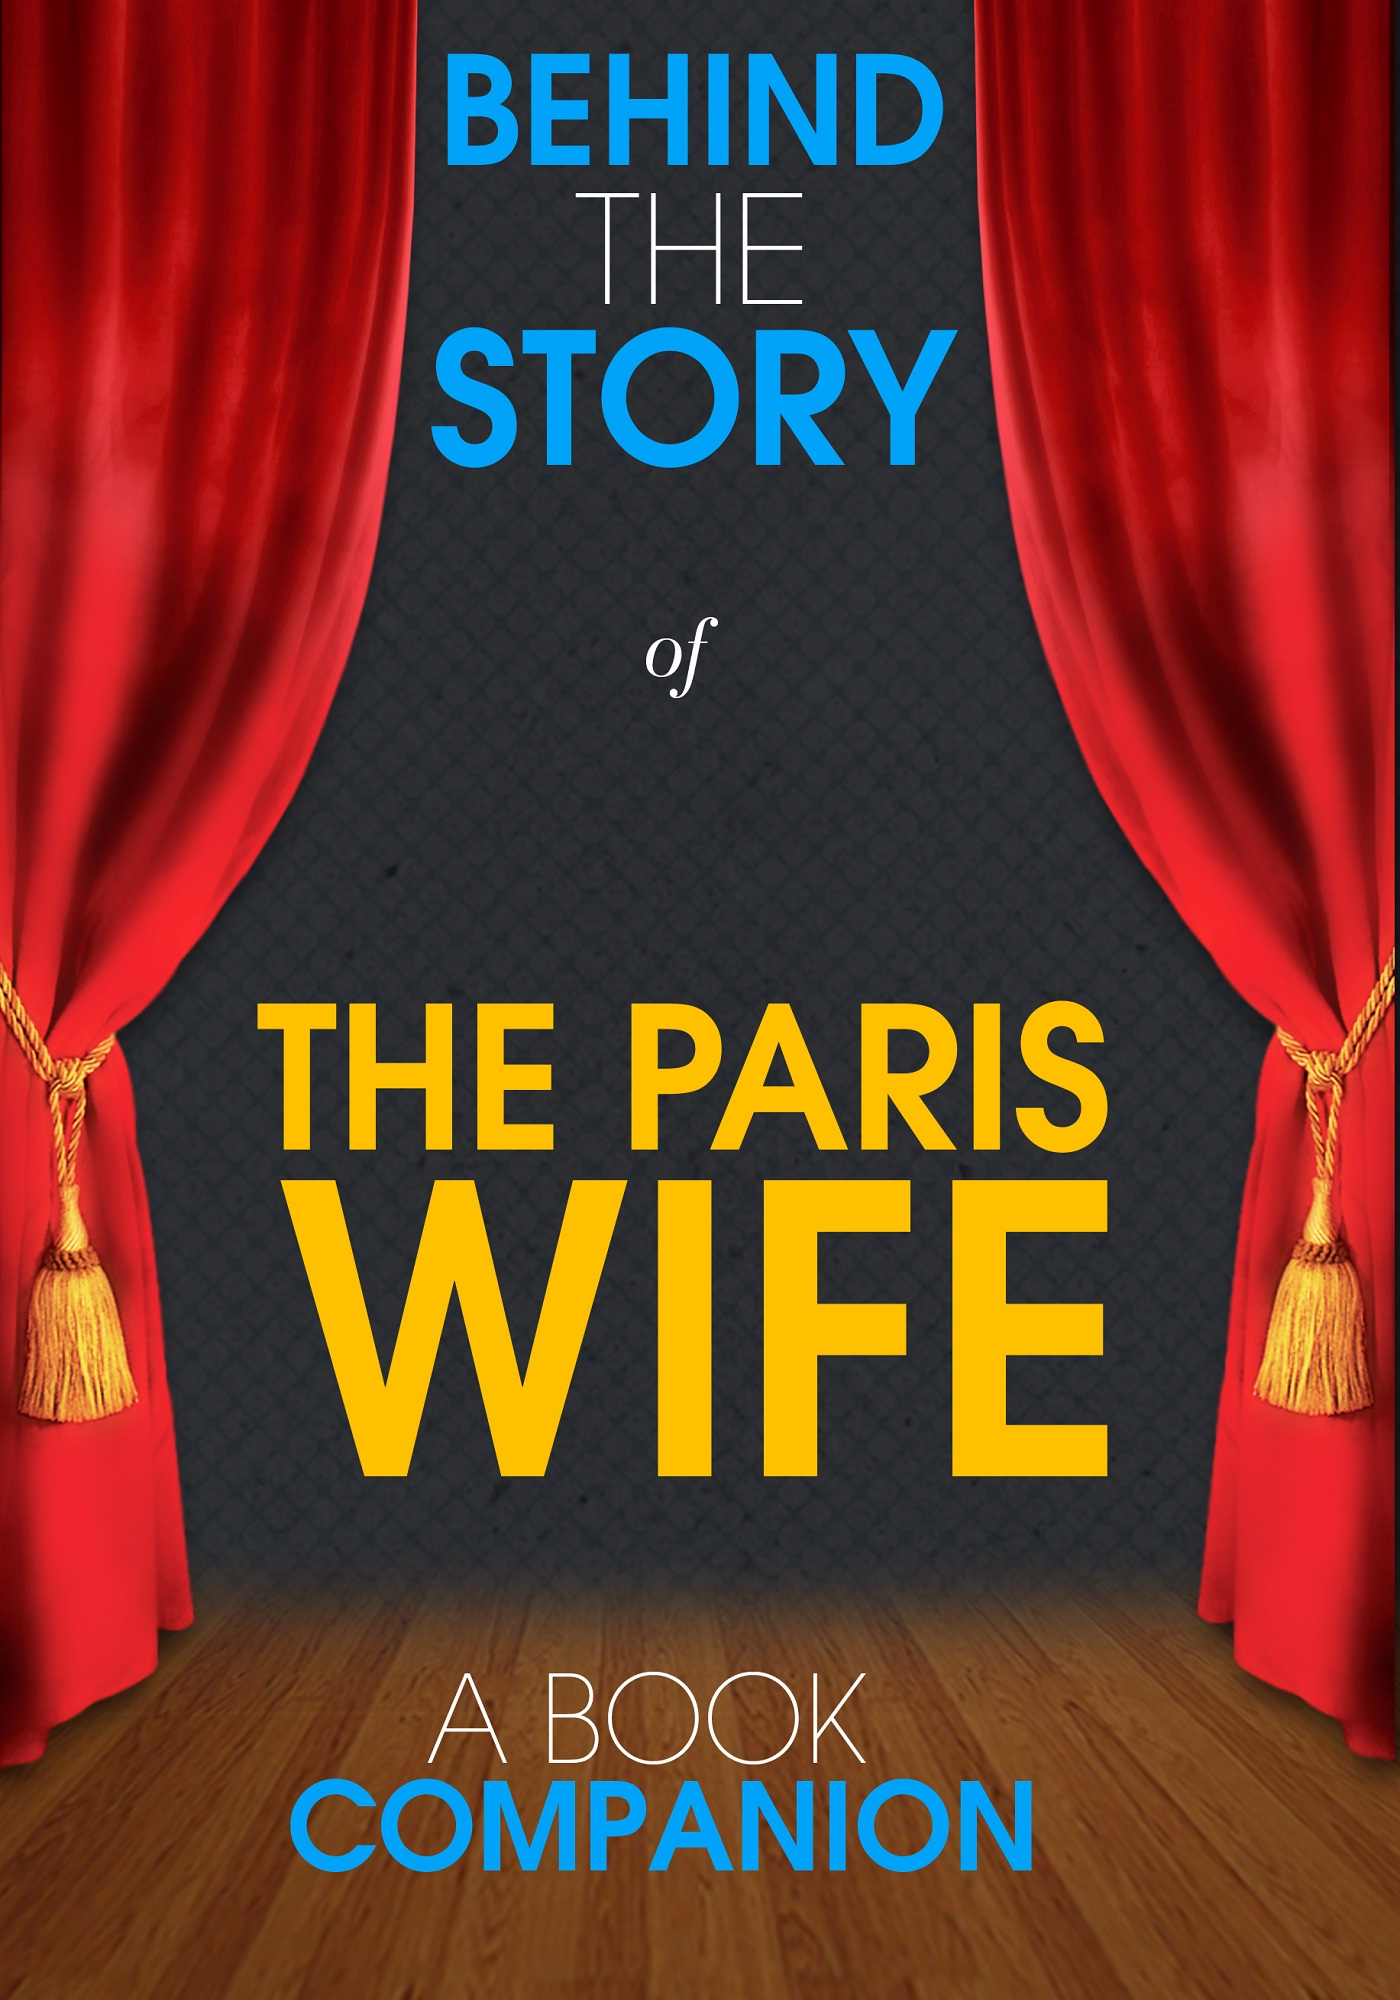 Behind the Story - The Paris Wife - Behind the Story (A Book Companion)